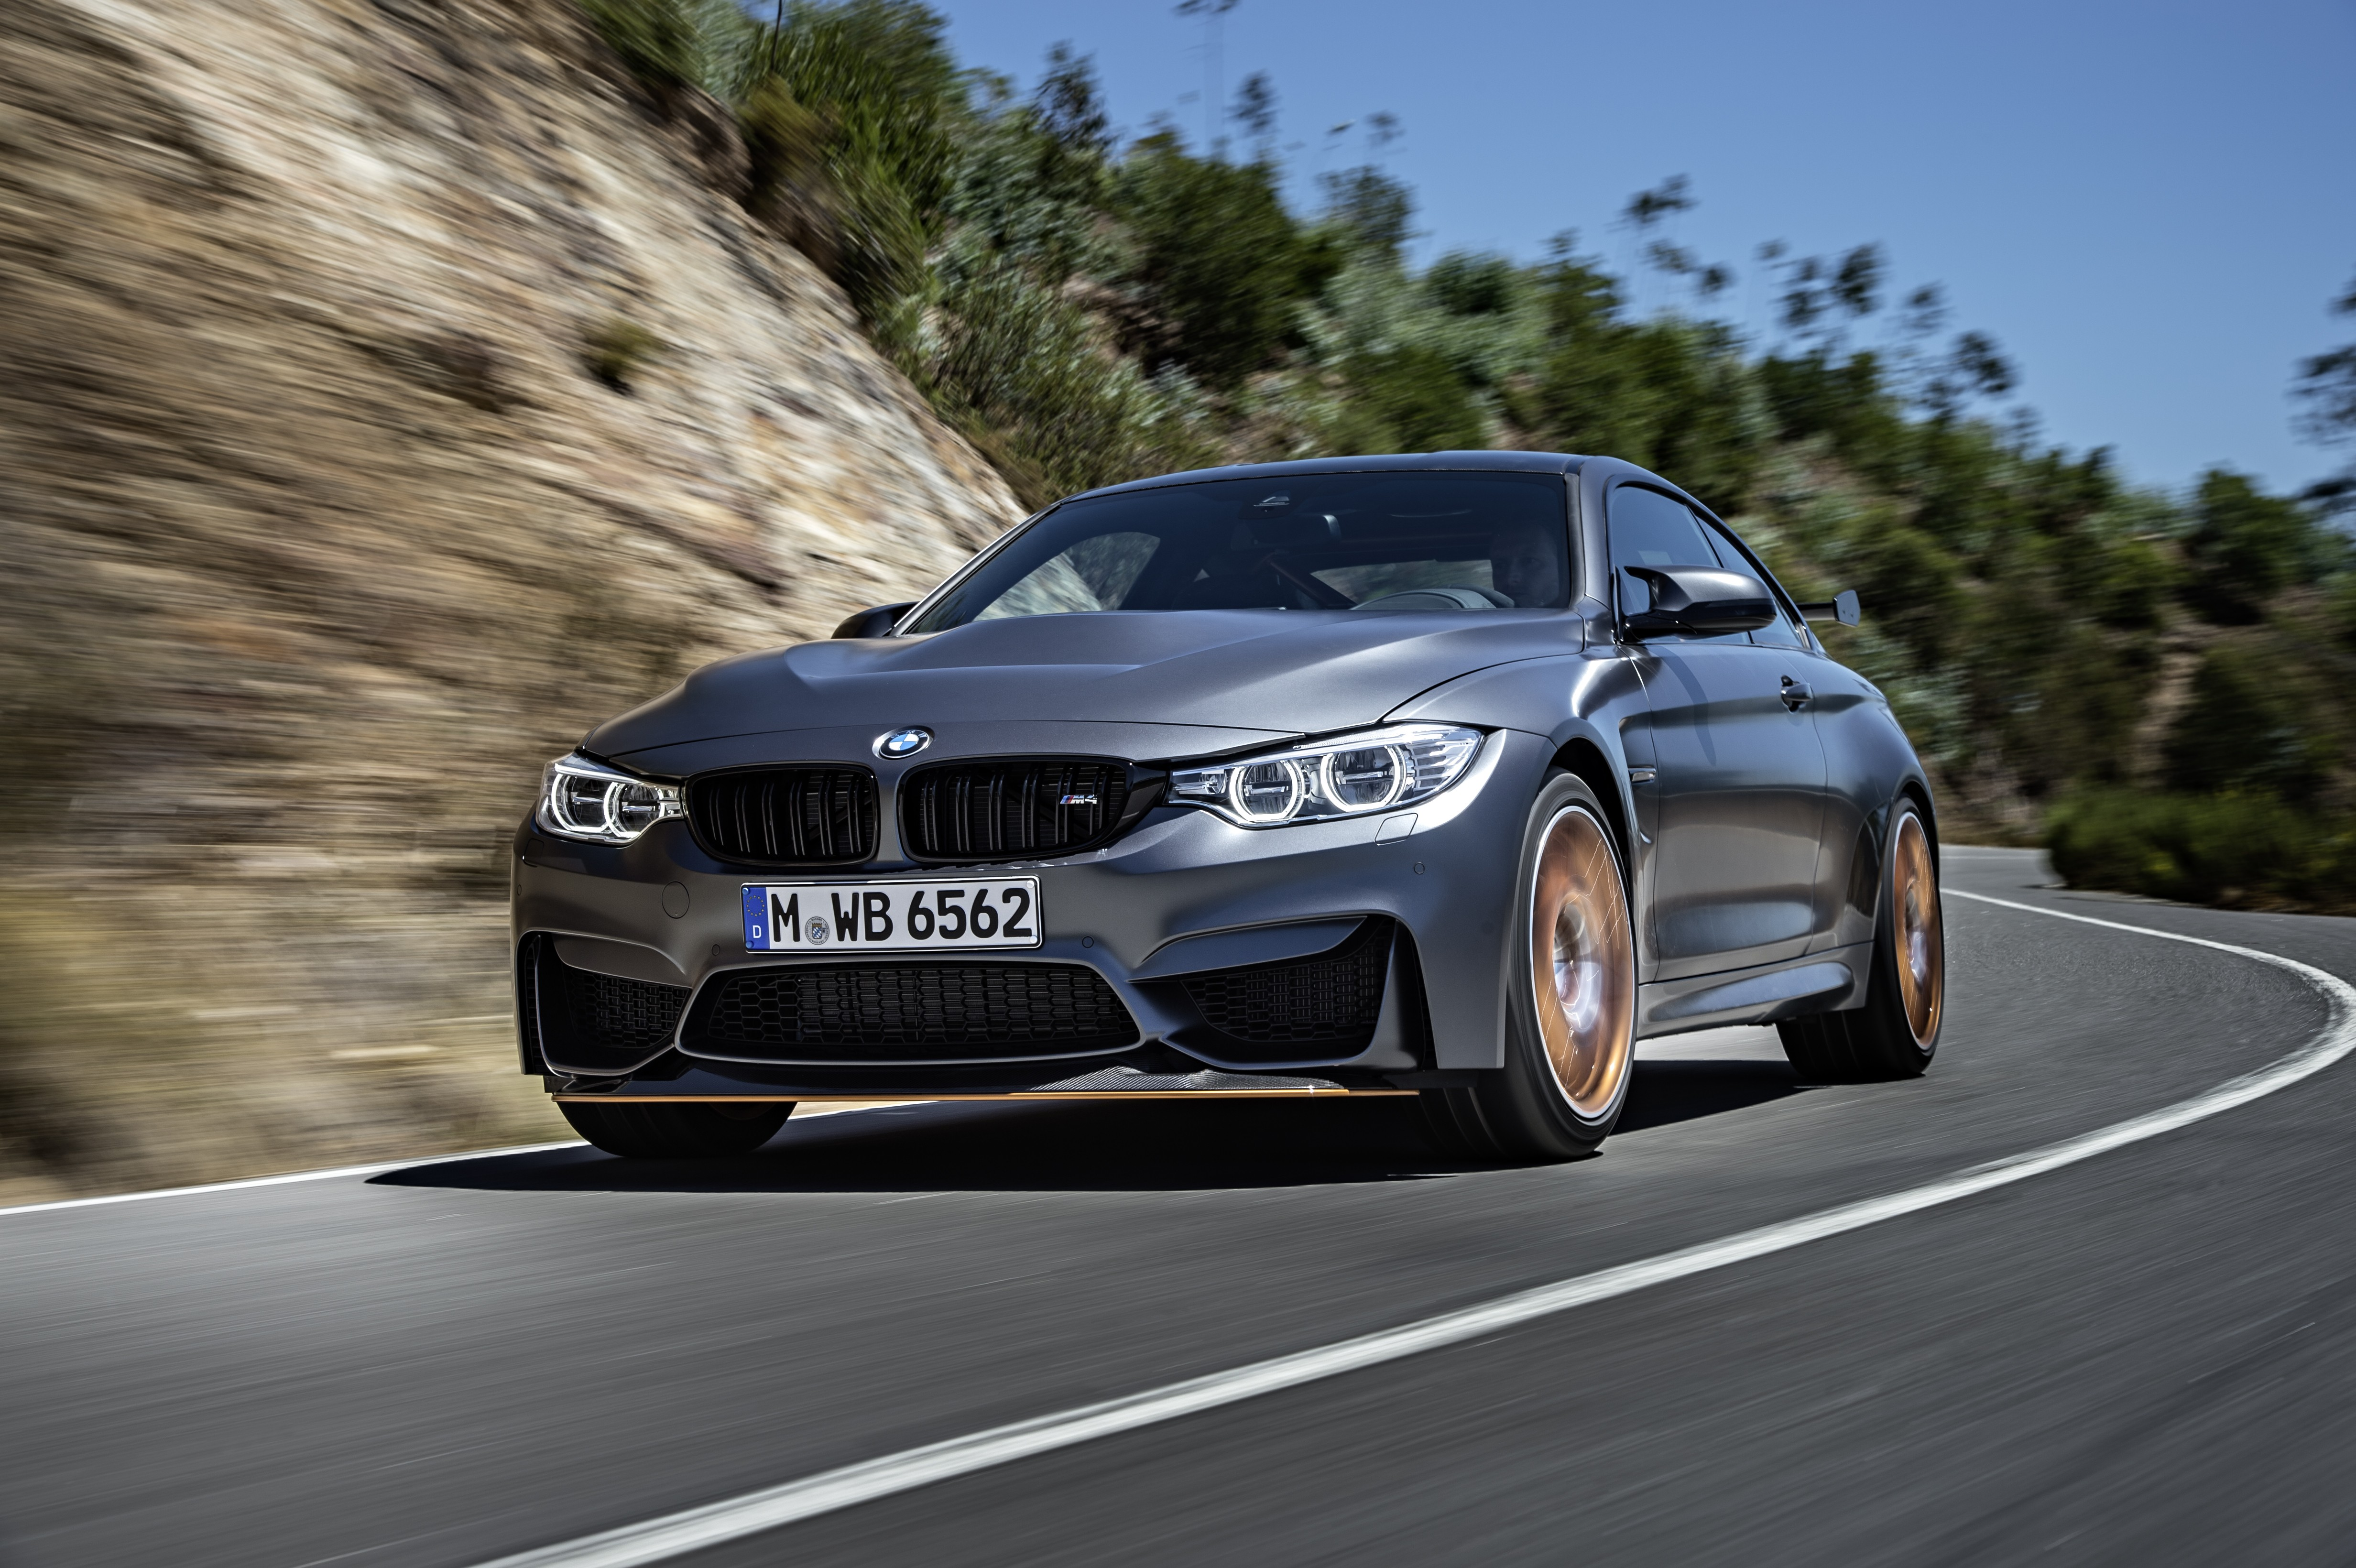 BMW M4 GTS Wrecked In Germany Every Remaining Unit Gains Value